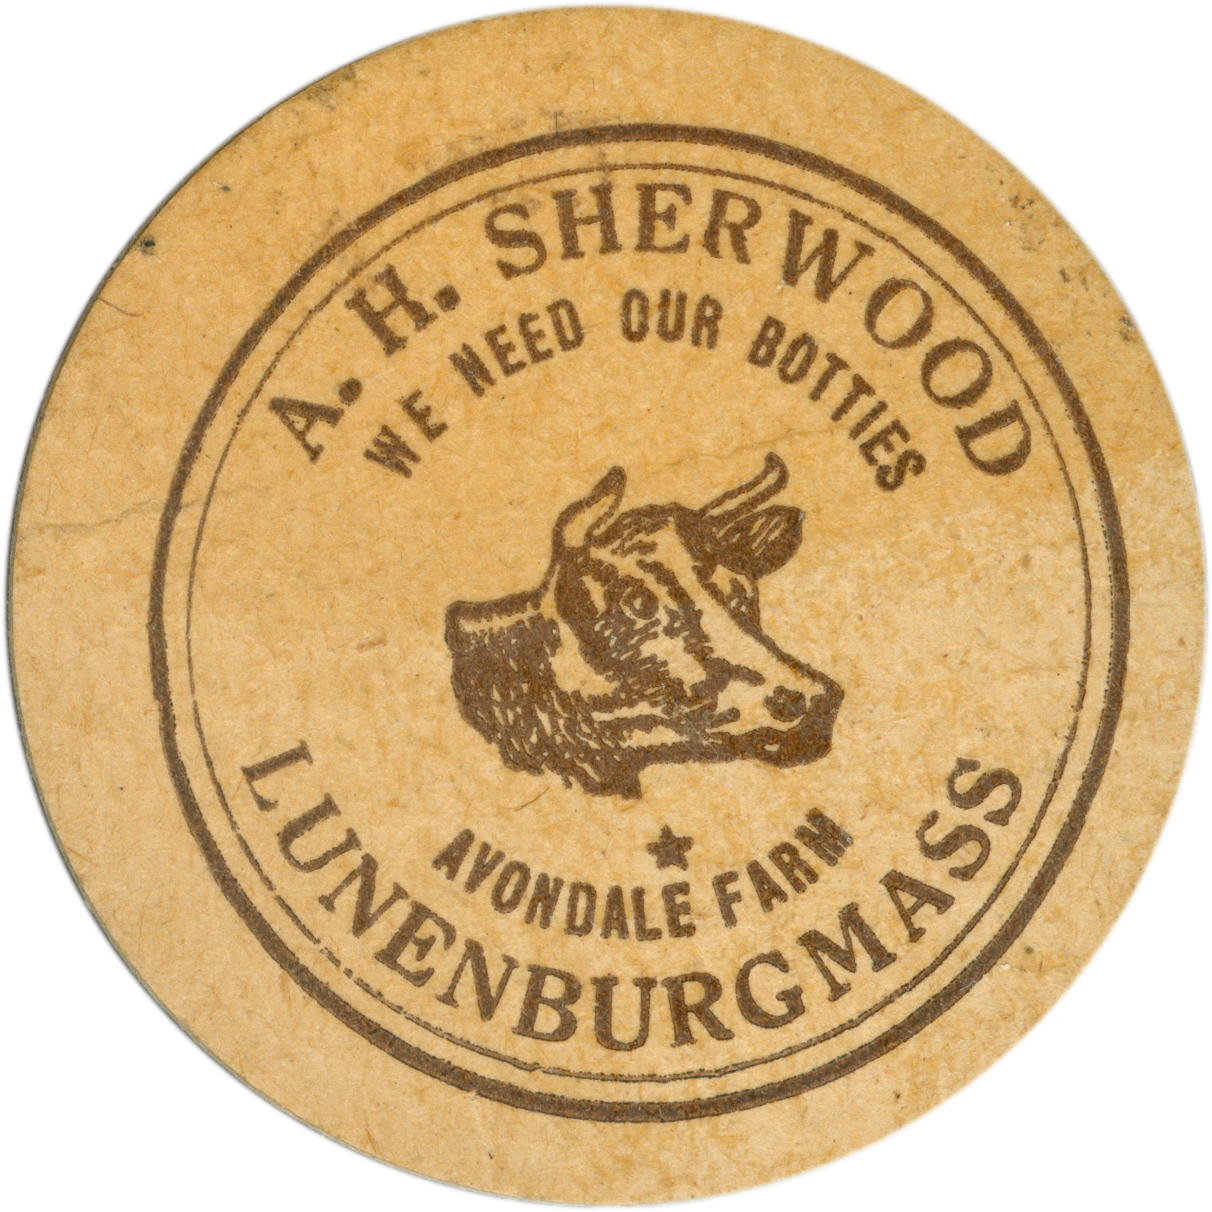 VernacularCircles__0001s_0004_A.H.-Sherwood----Avondale-Farm.png